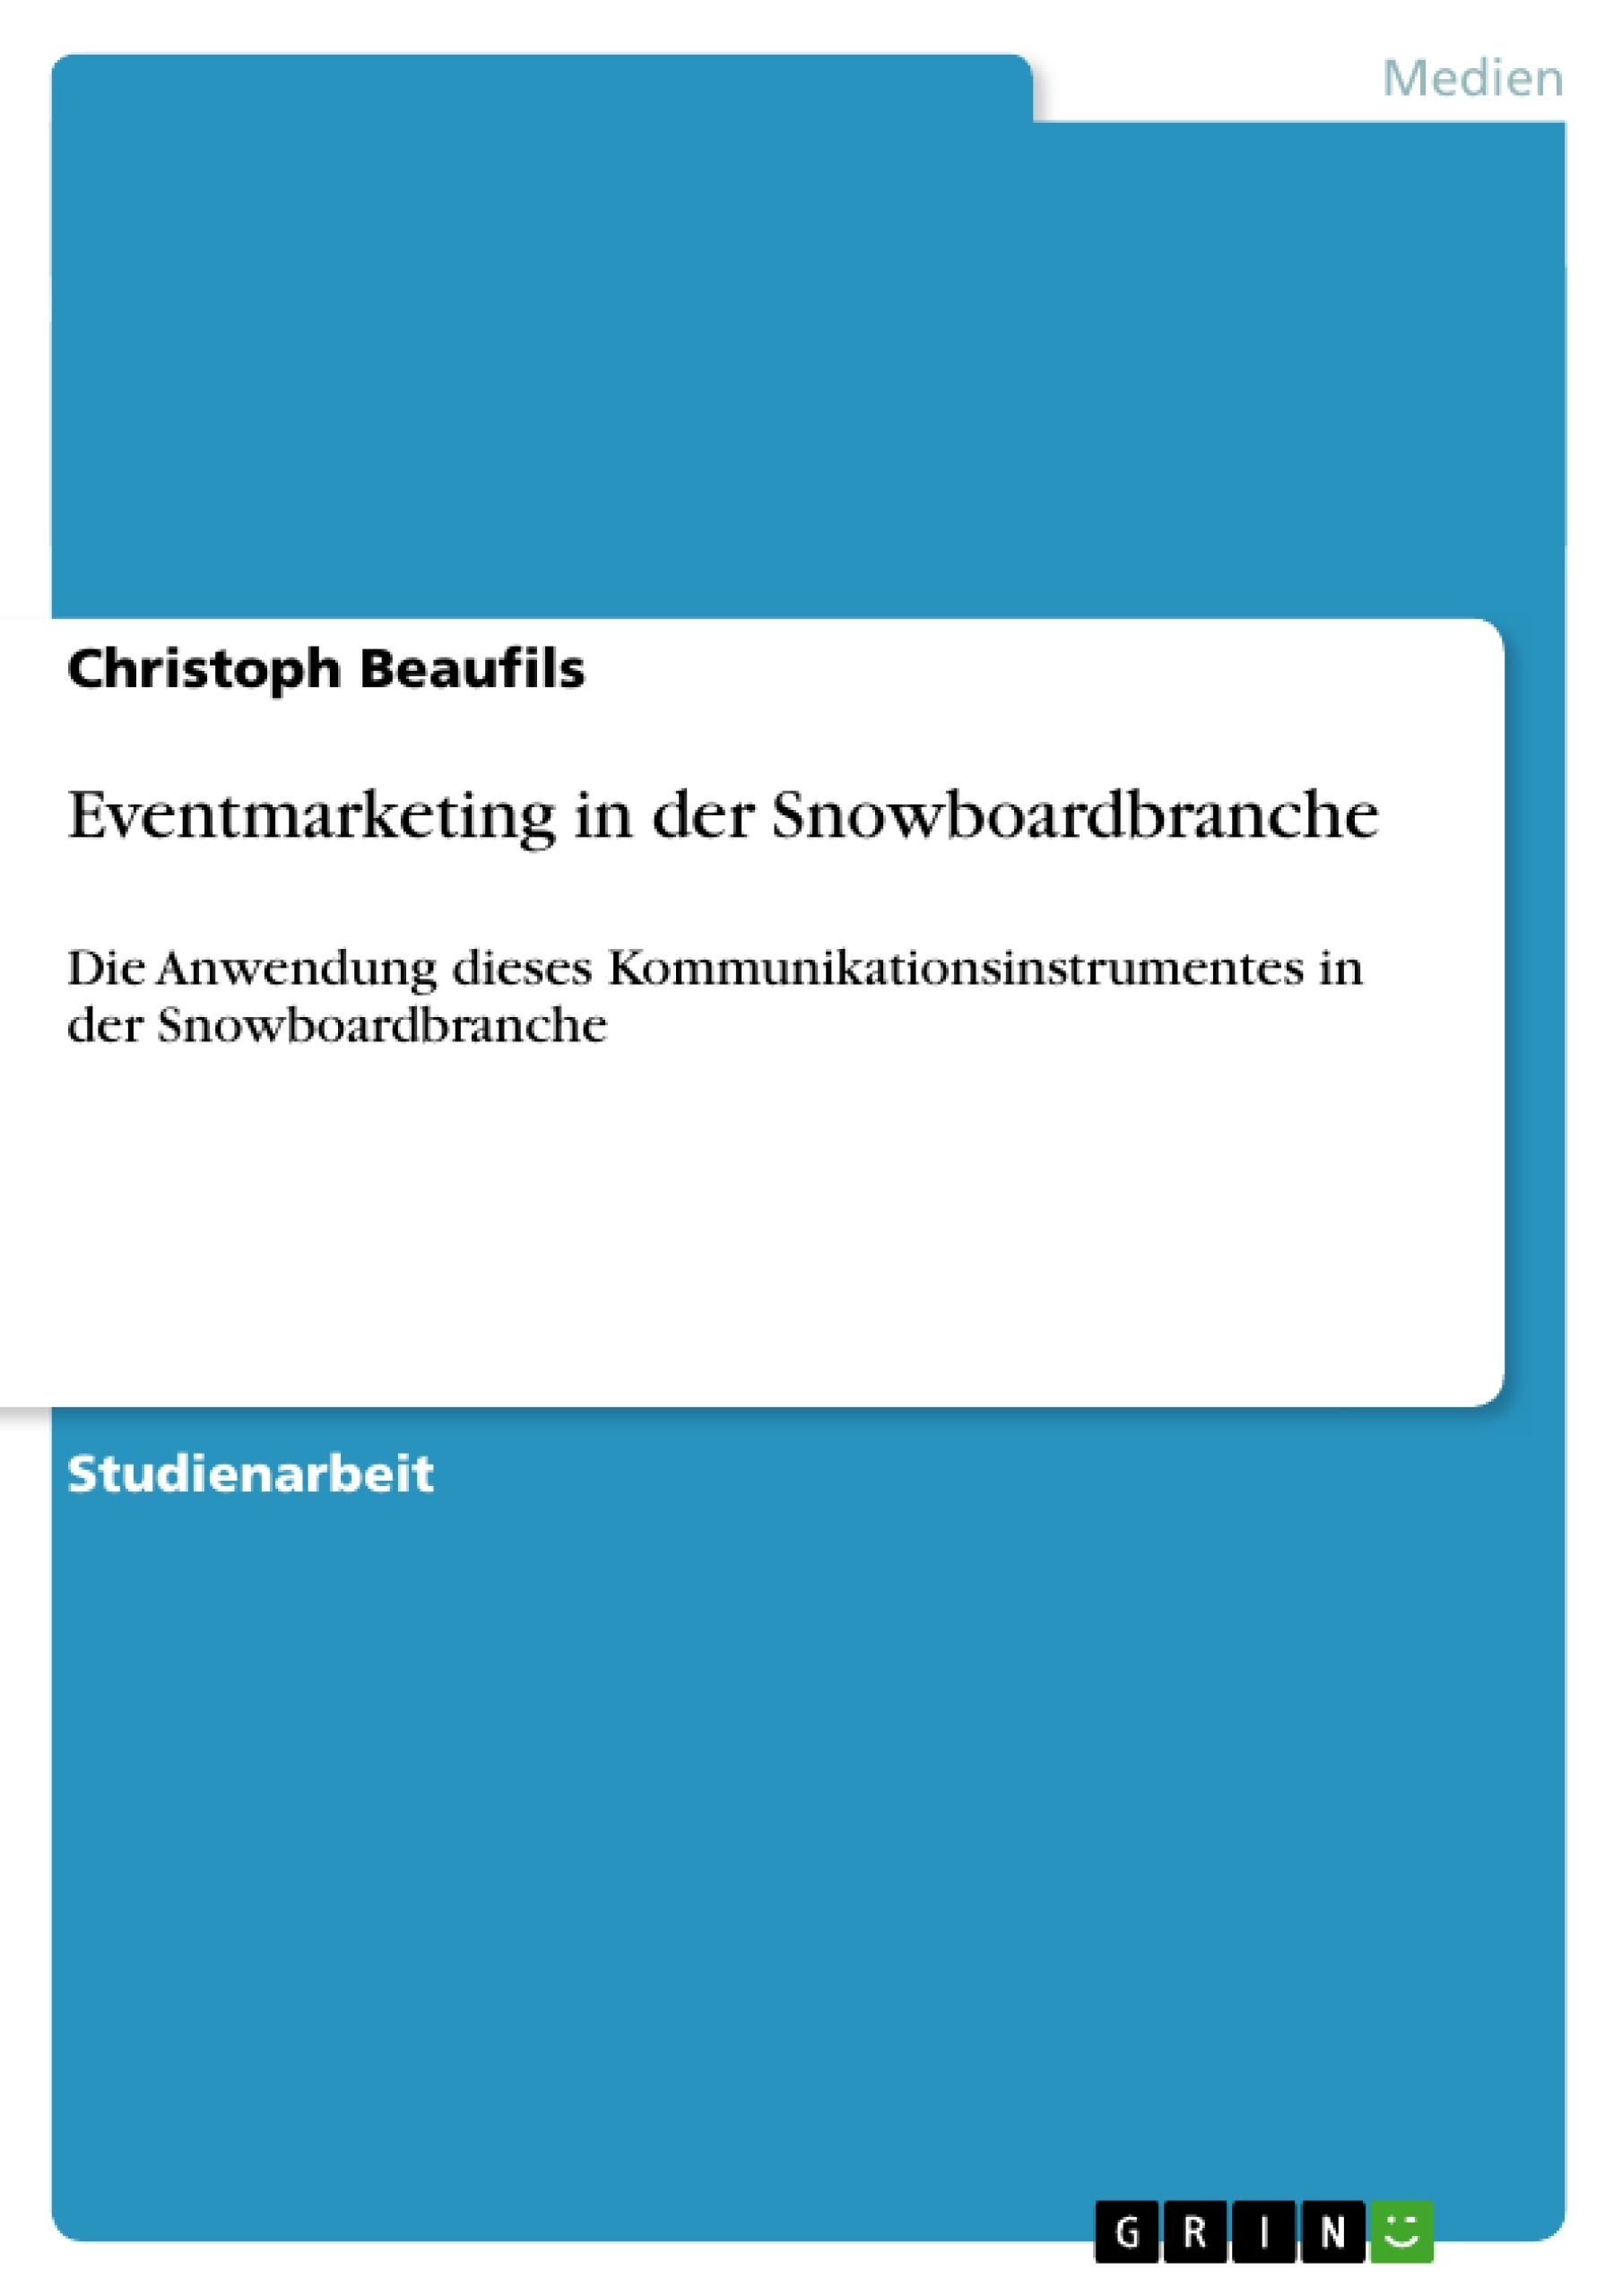 Titel: Eventmarketing in der Snowboardbranche